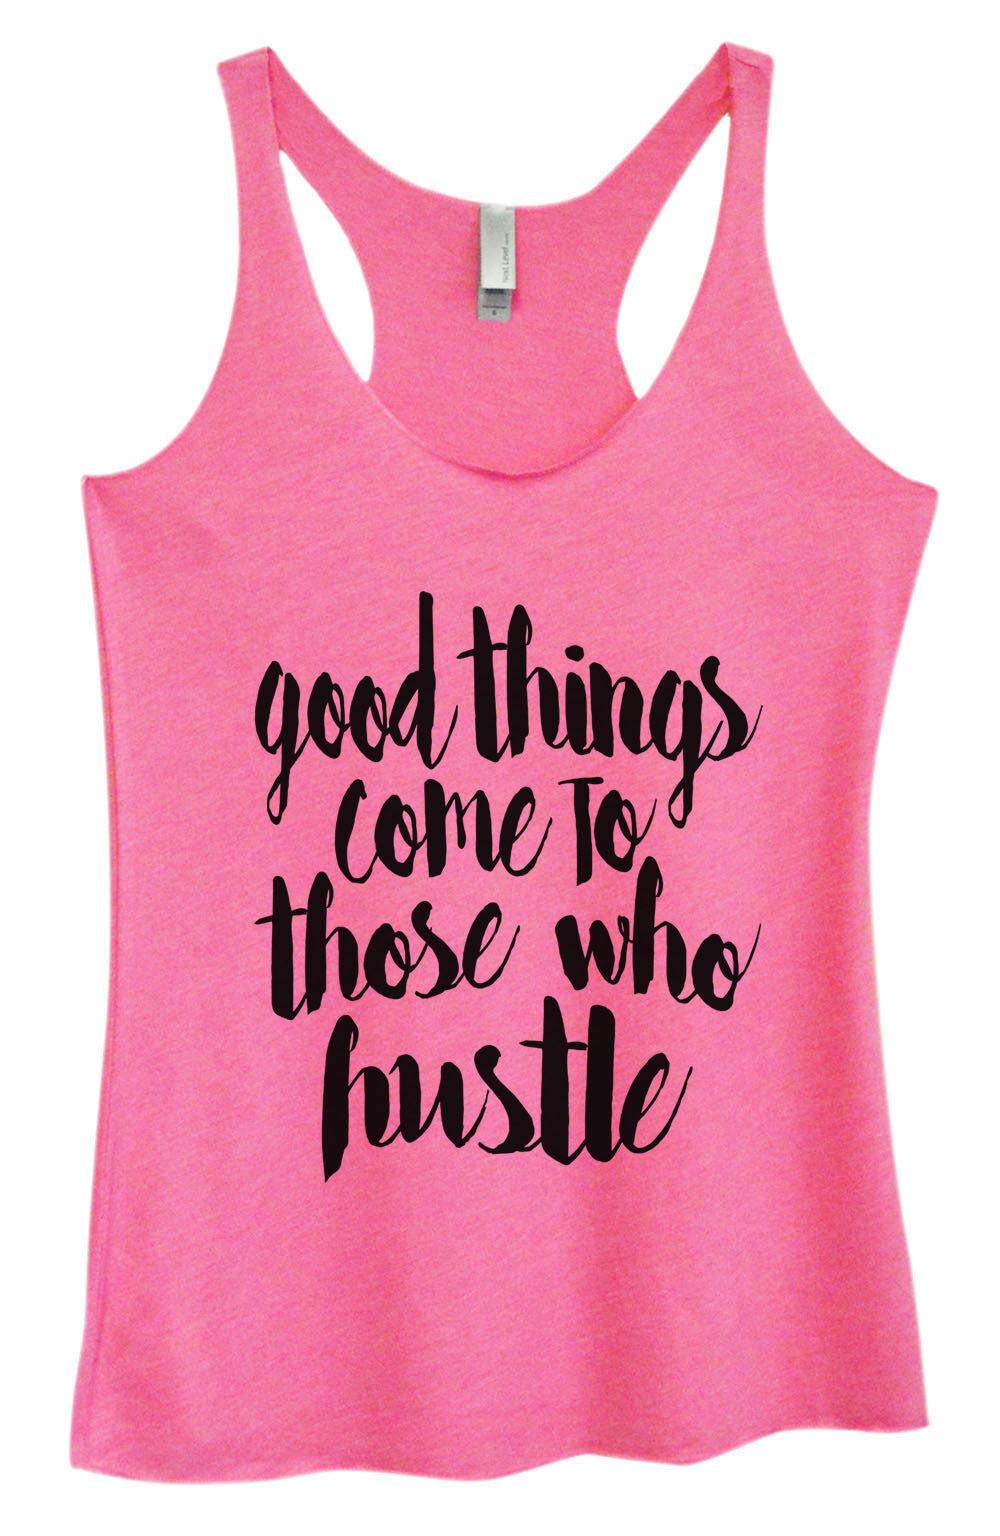 Womens Fashion Triblend Tank Top - Good Things Come To Those Who Hustle - Tri-1478 - Funny Shirts Tank Tops Burnouts and Triblends  - 4